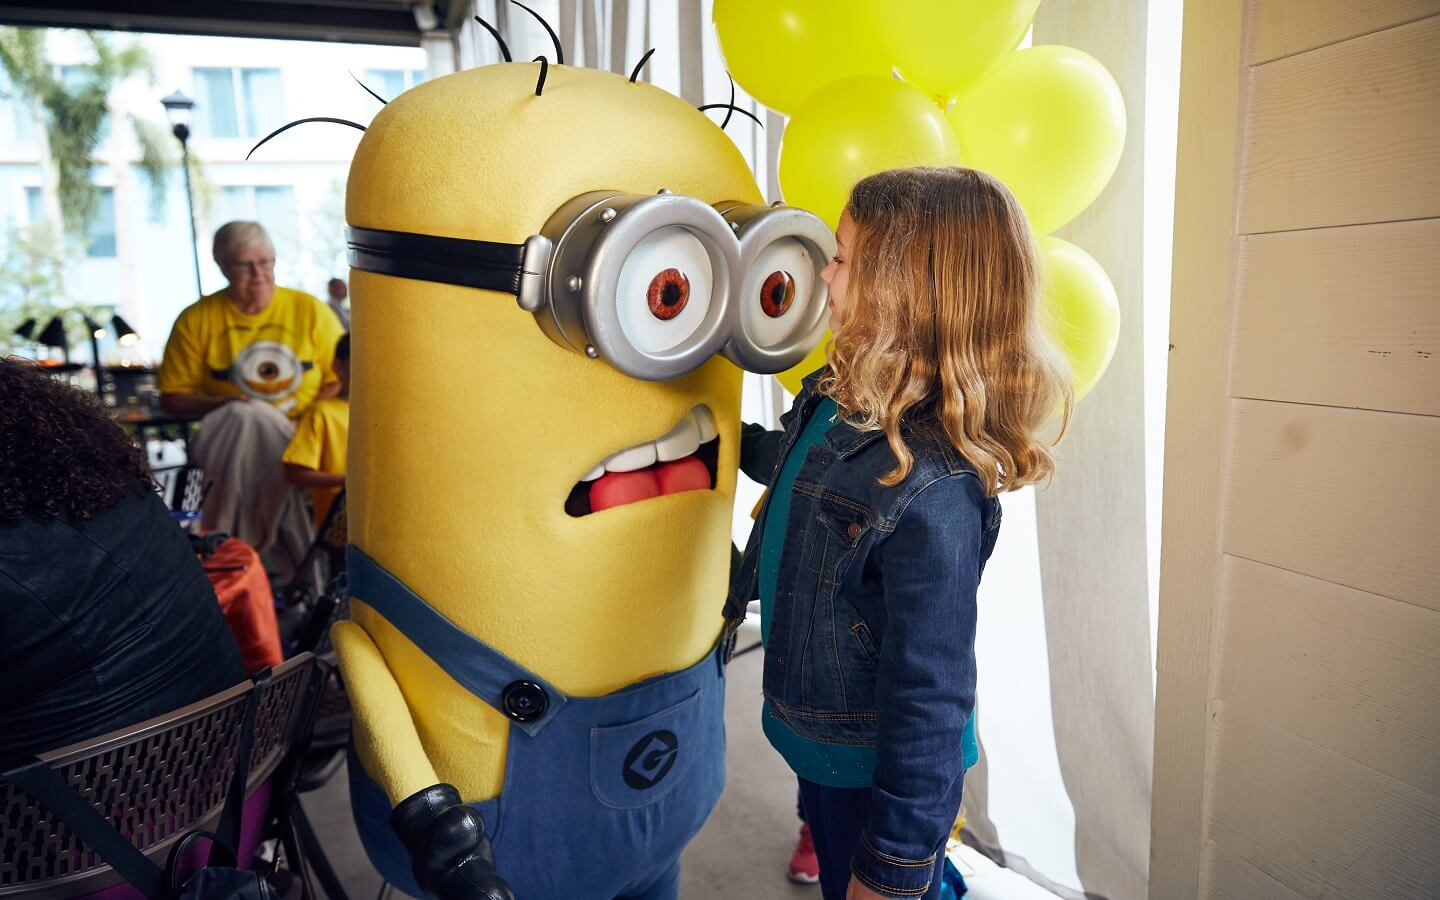 Universal orlando offers new despicable me character breakfast at make their way around to each table for a very special meet and greet if you have a banana on your plate you can expect to see some minions show up kristyandbryce Image collections